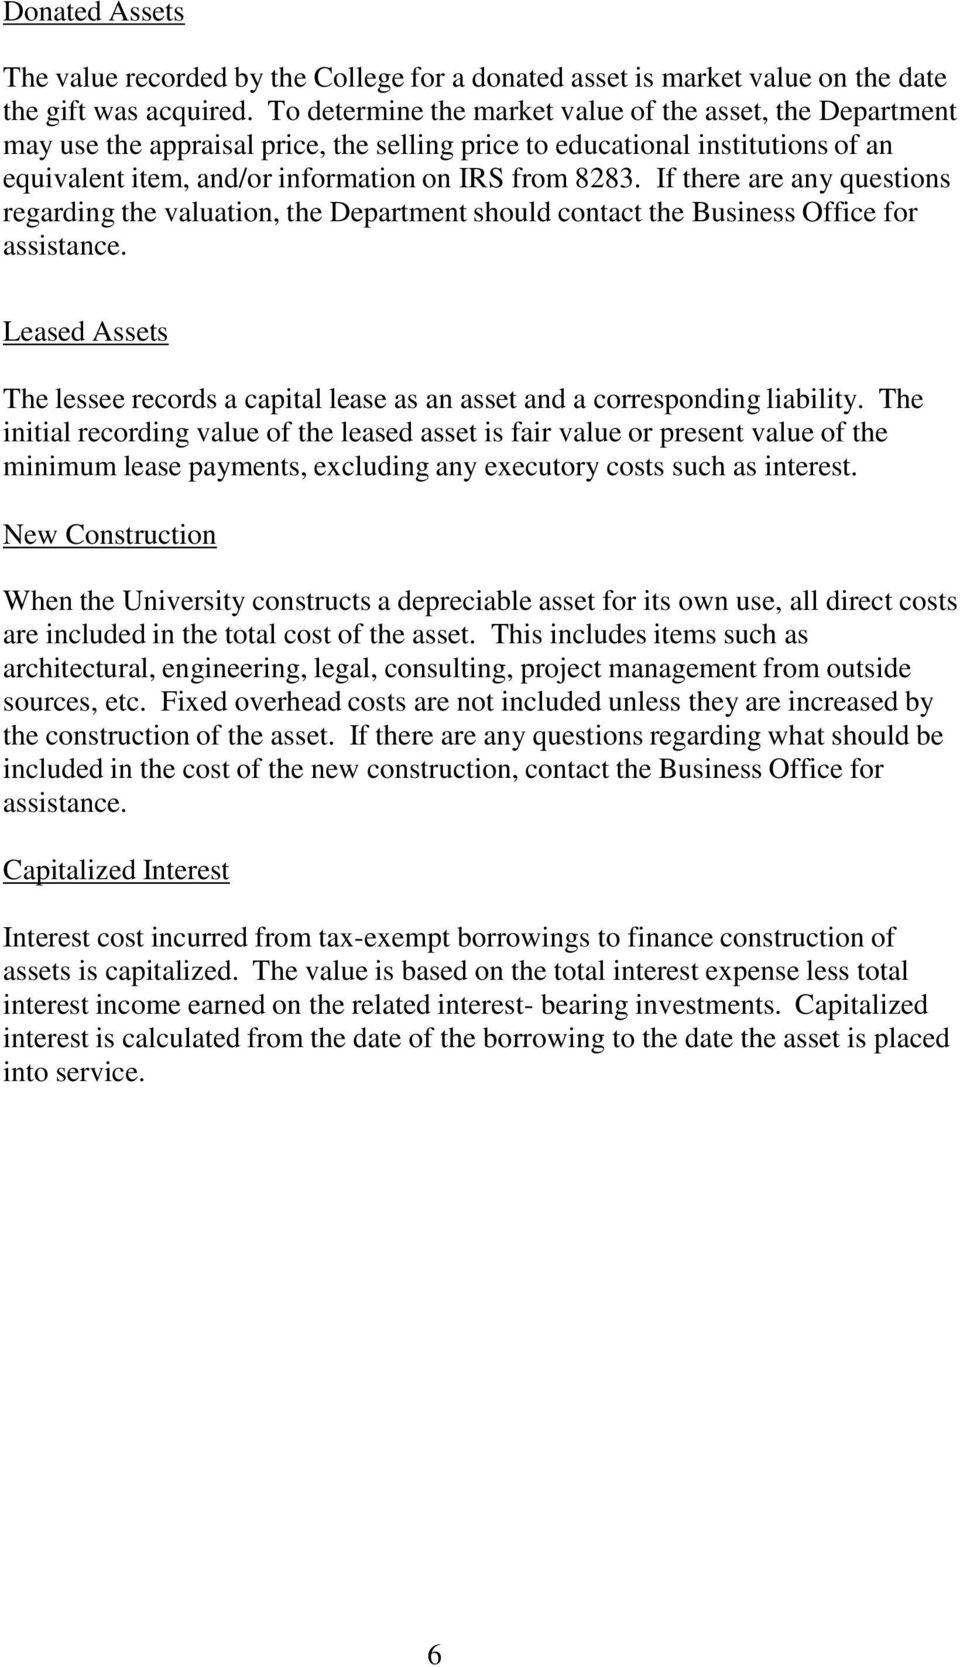 If there are any questions regarding the valuation, the Department should contact the Business Office for assistance.